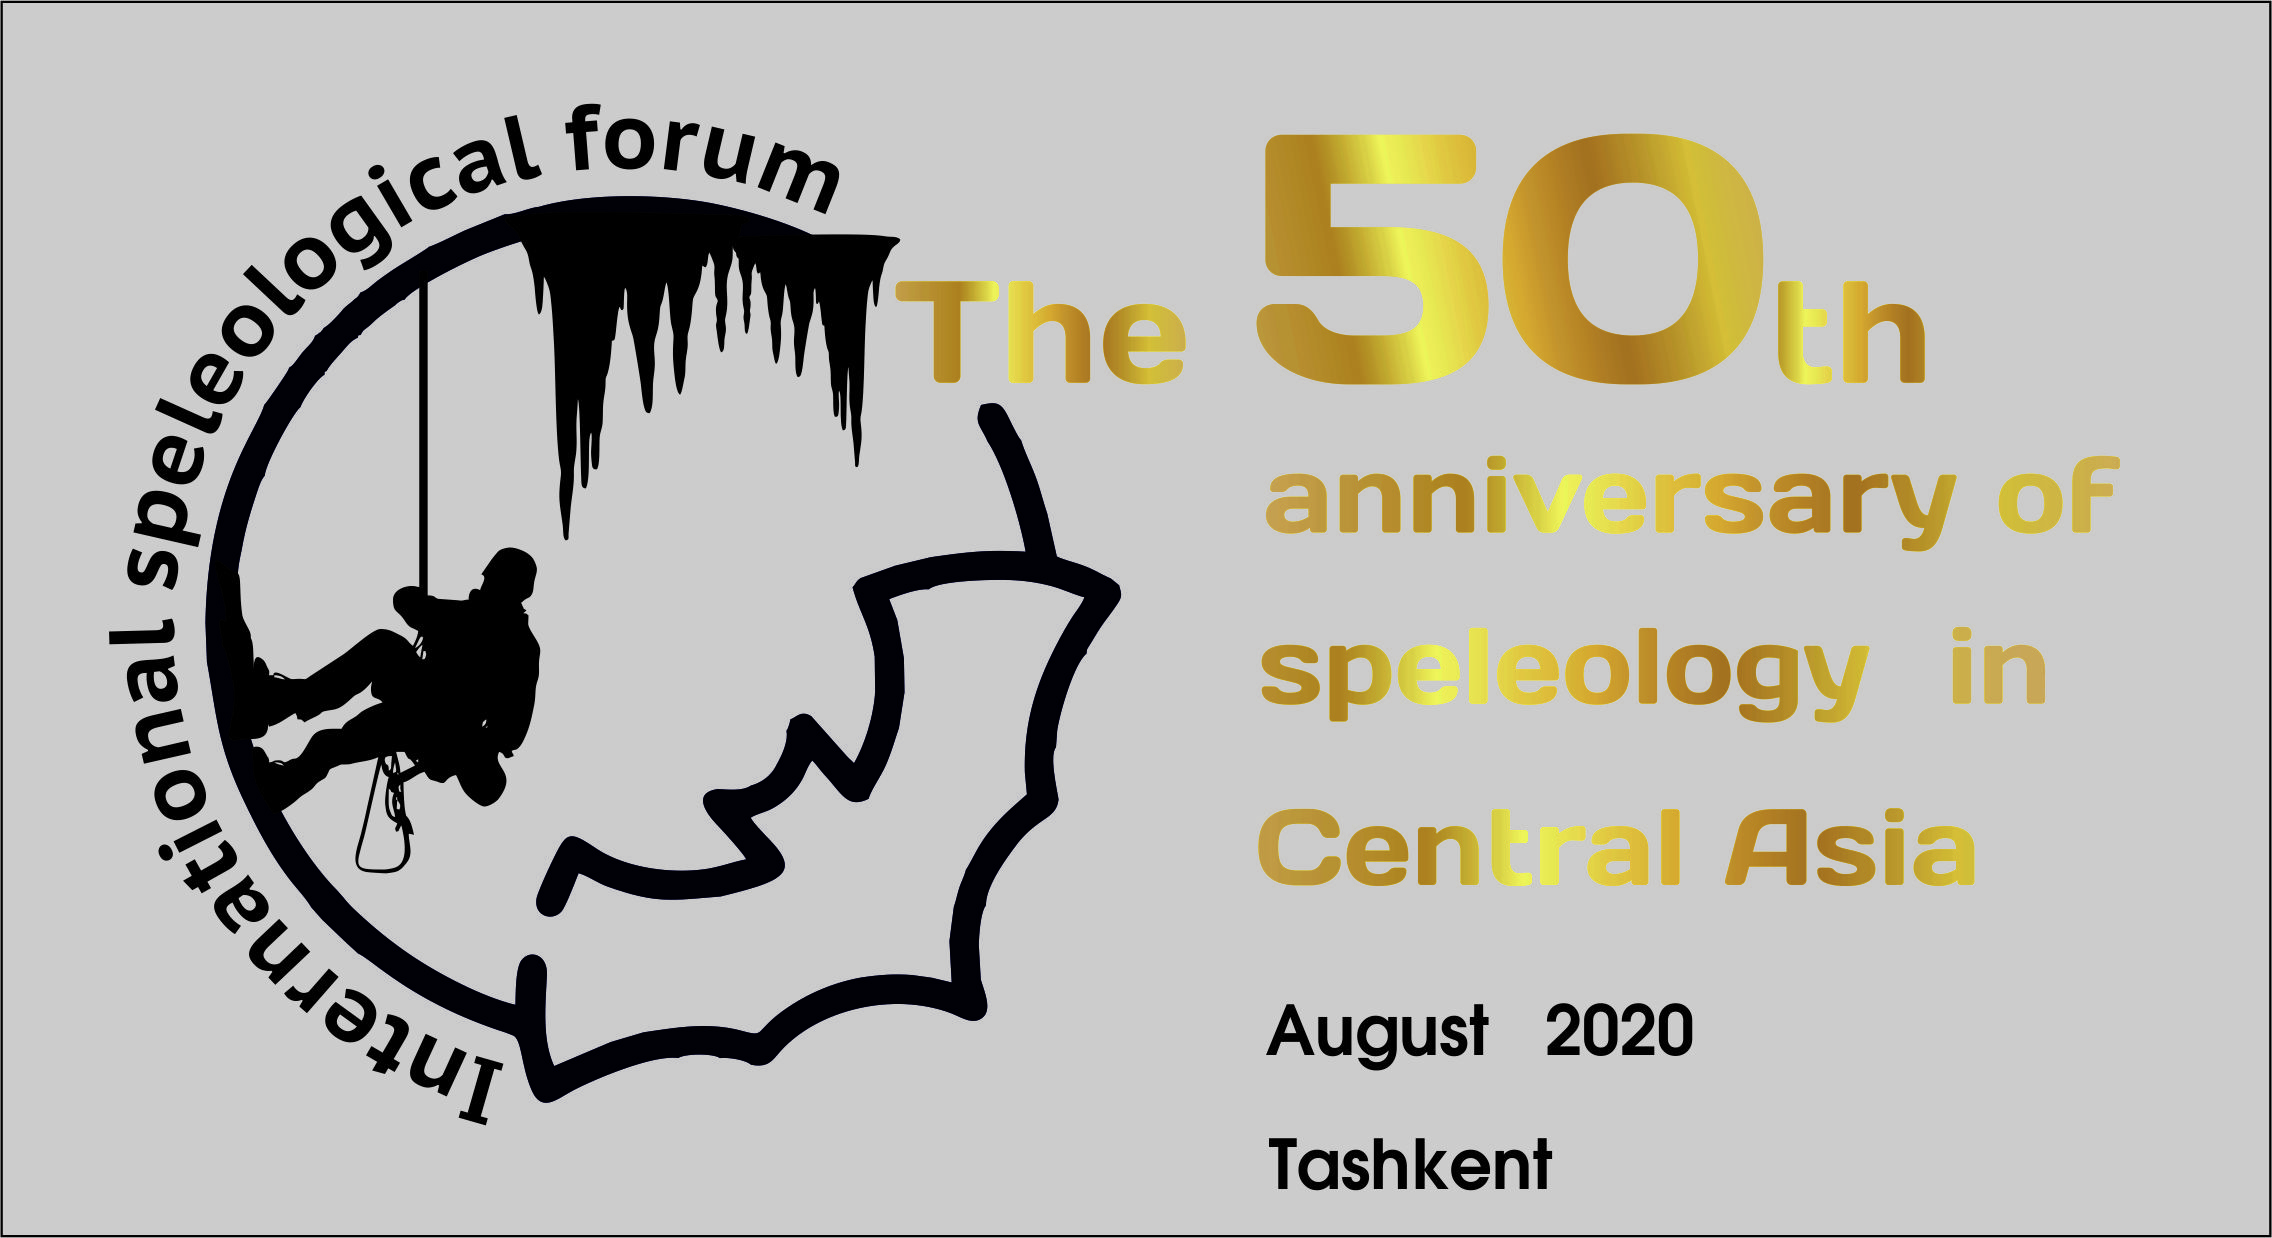 International Central Asian Speleological Forum, August 21 – 24 – 2020, Tashkent,  Uzbekistan